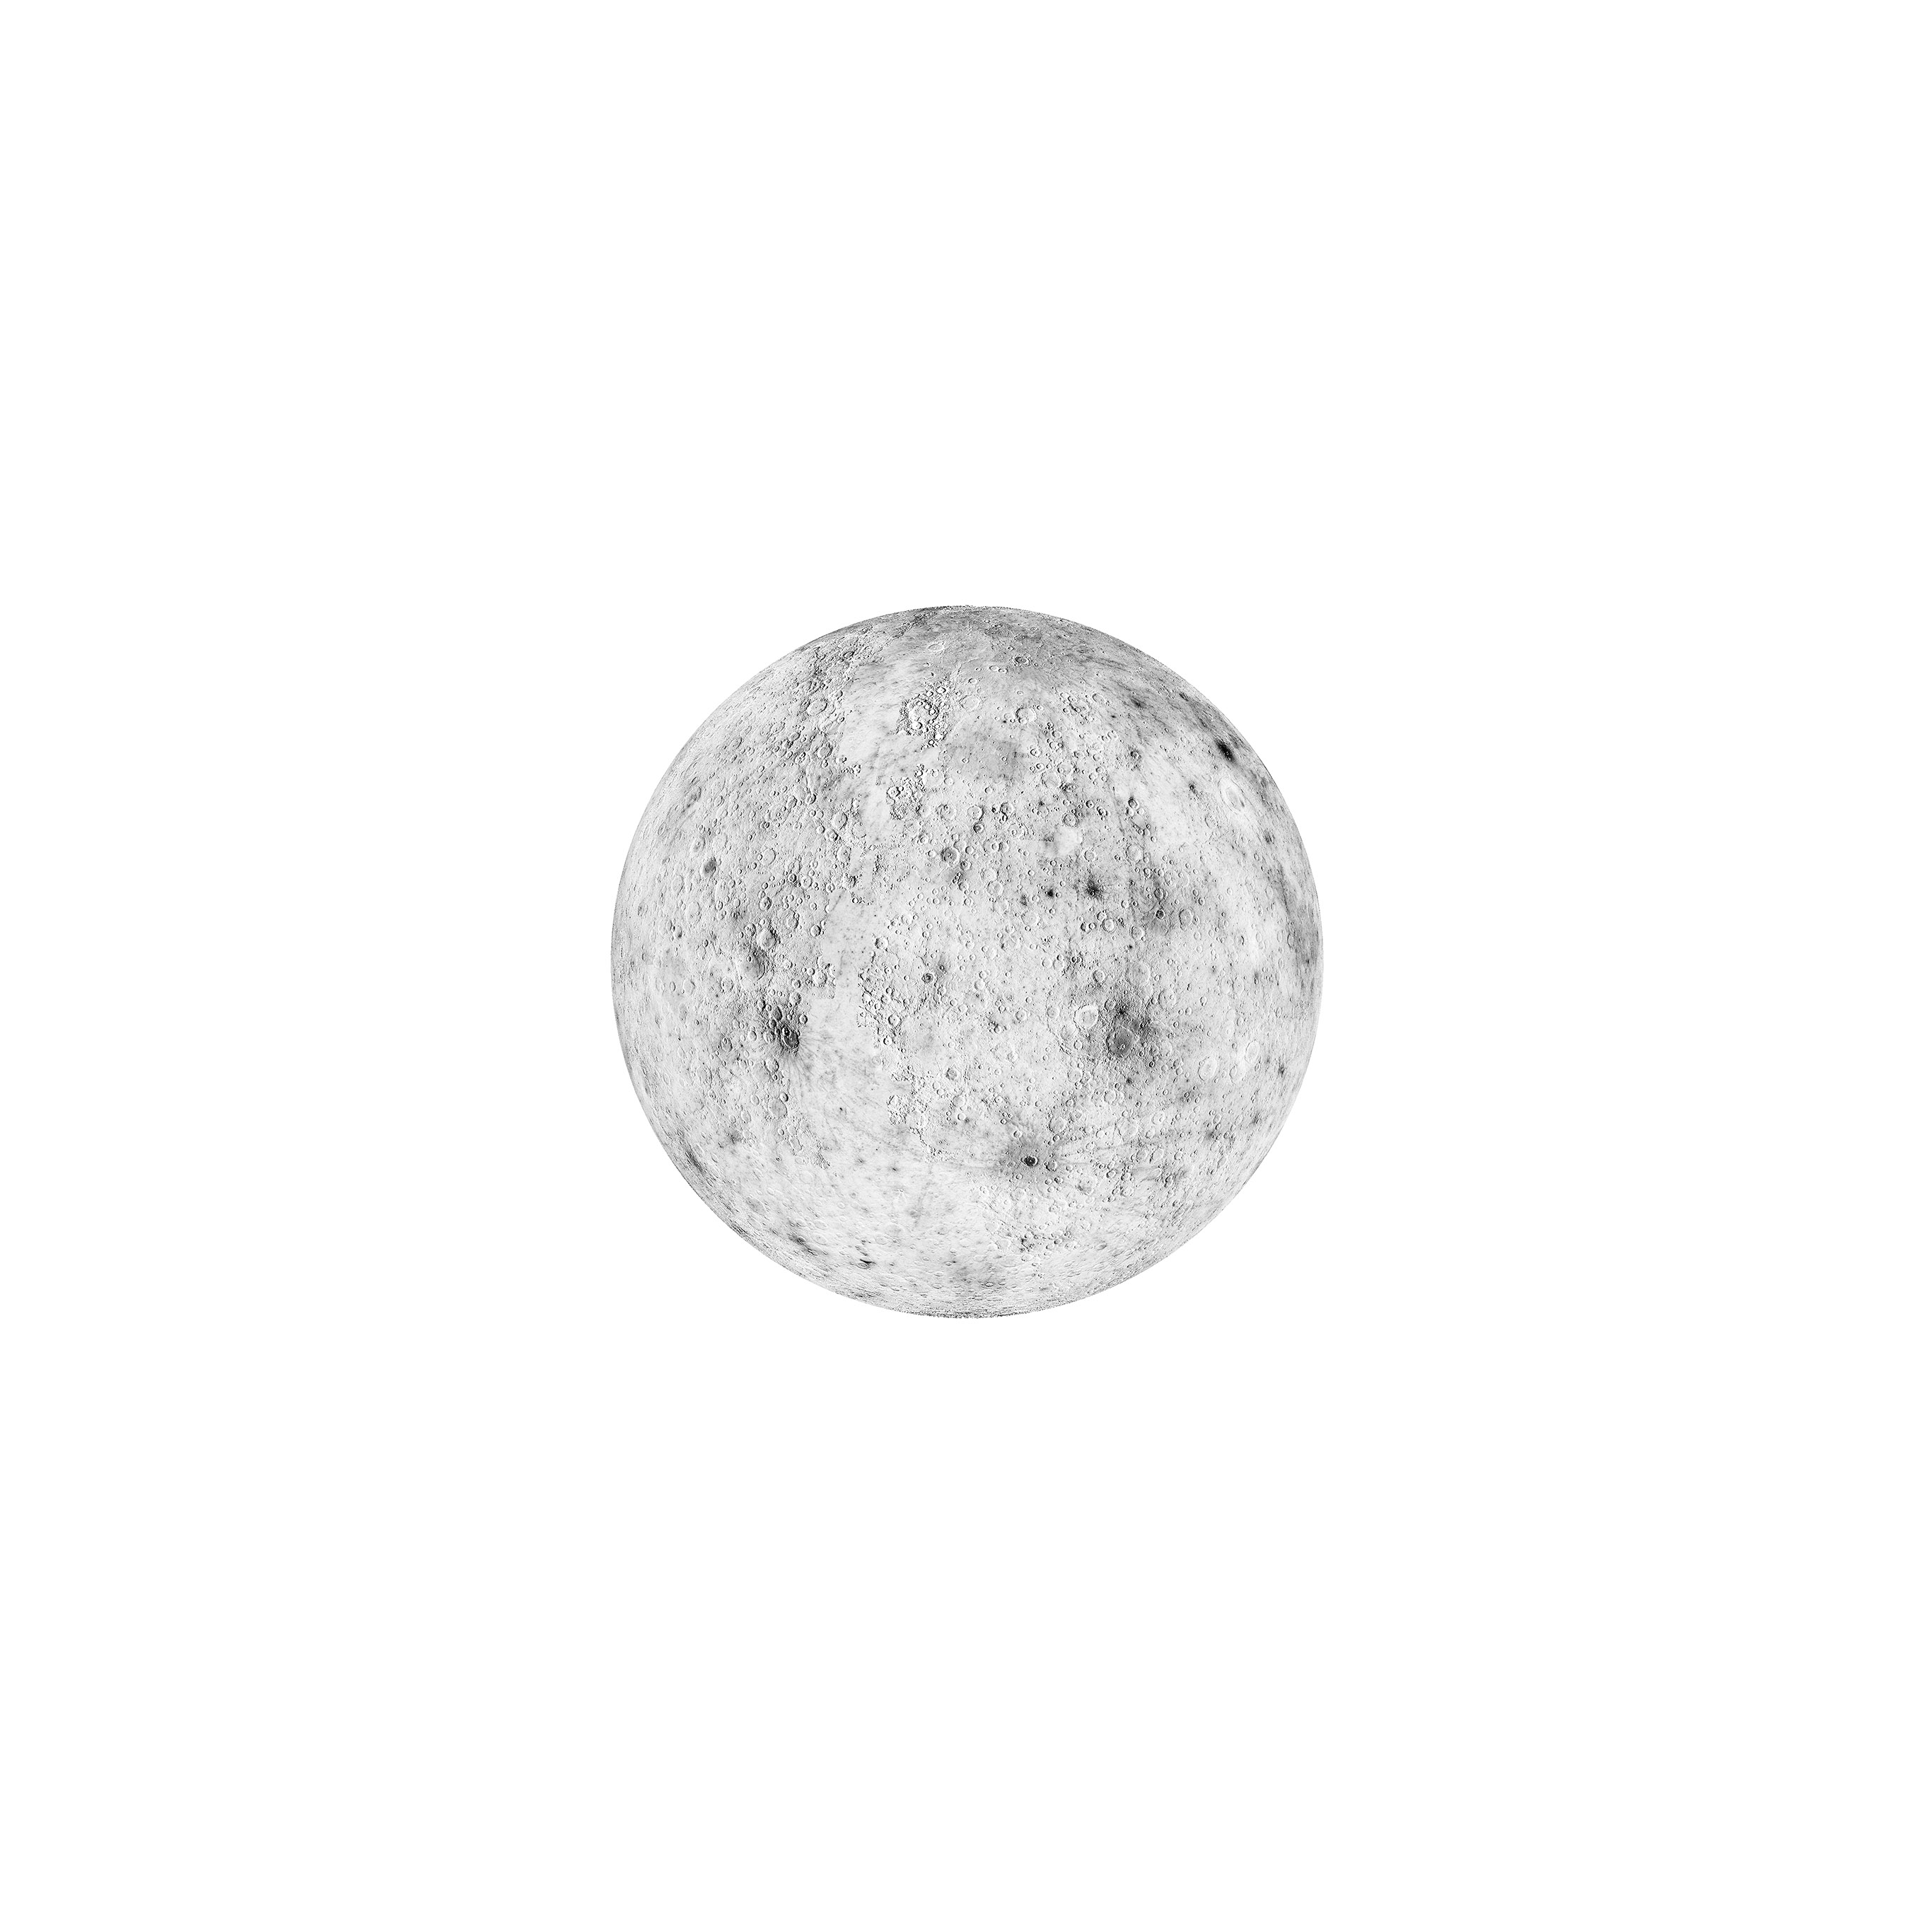 I Love Papers | ar09-moon-white-minimal-art-space-planet